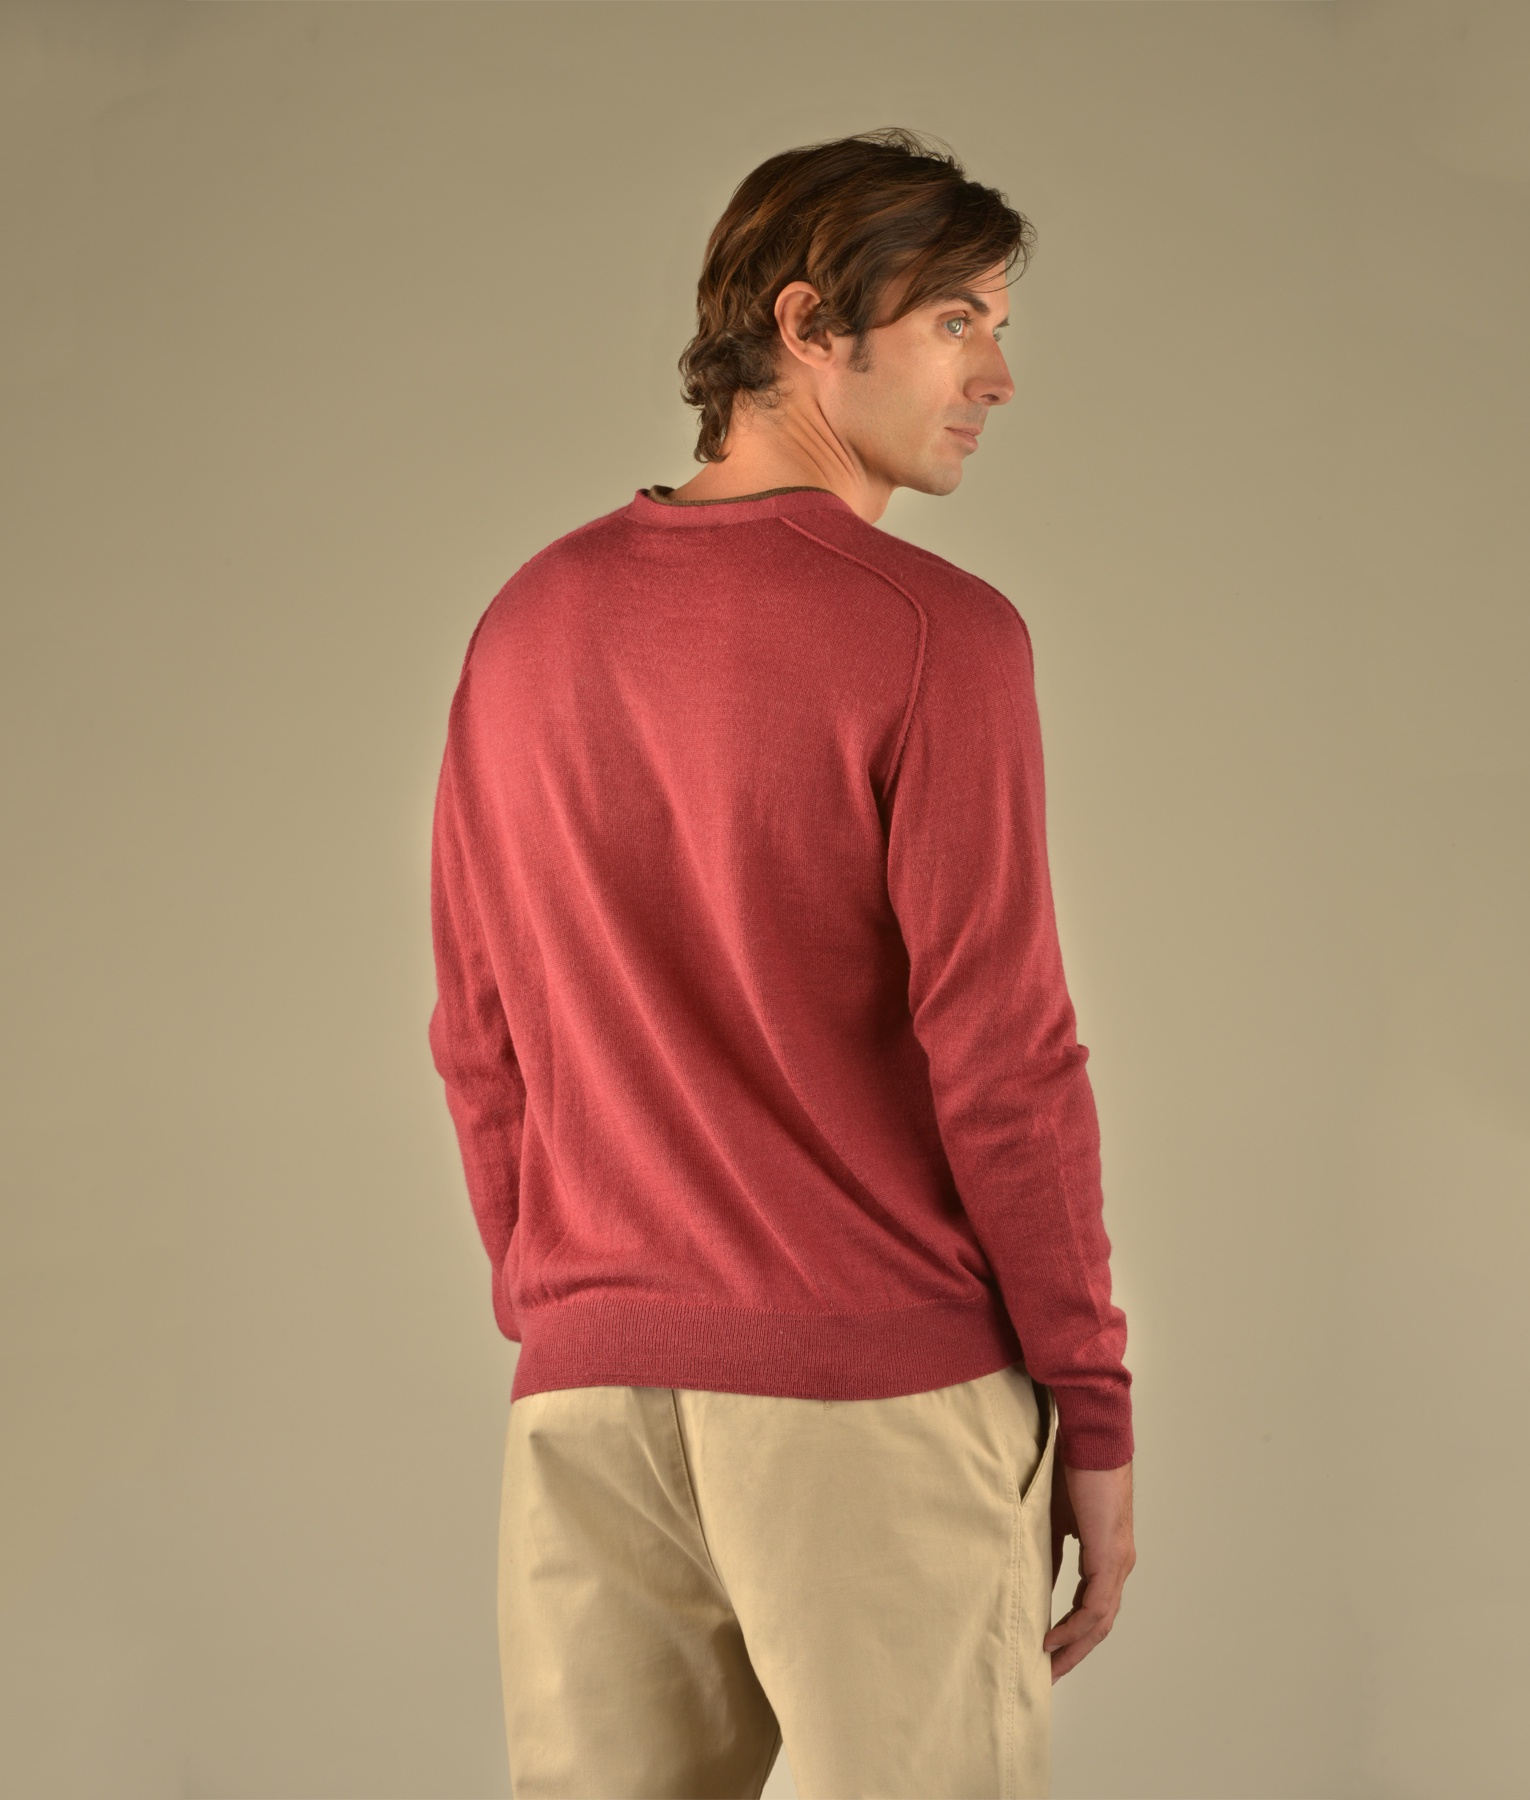 CLASSIC JERSEY SADDLE V NECK SWEATER C006